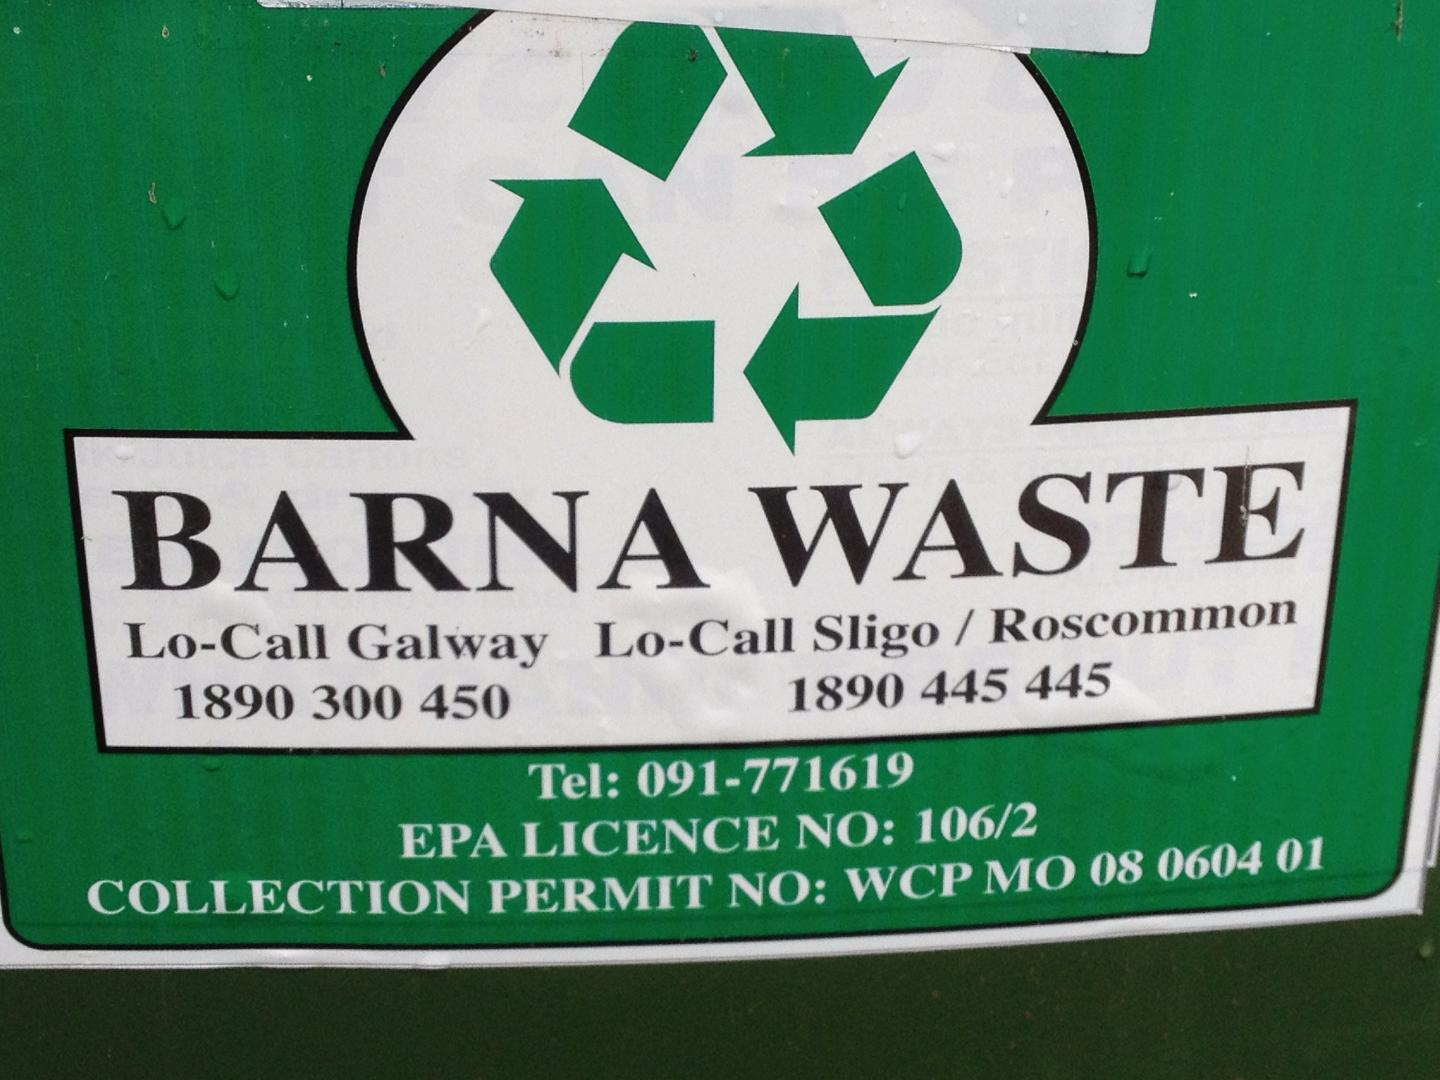 Photo of Barna Waste compost collection